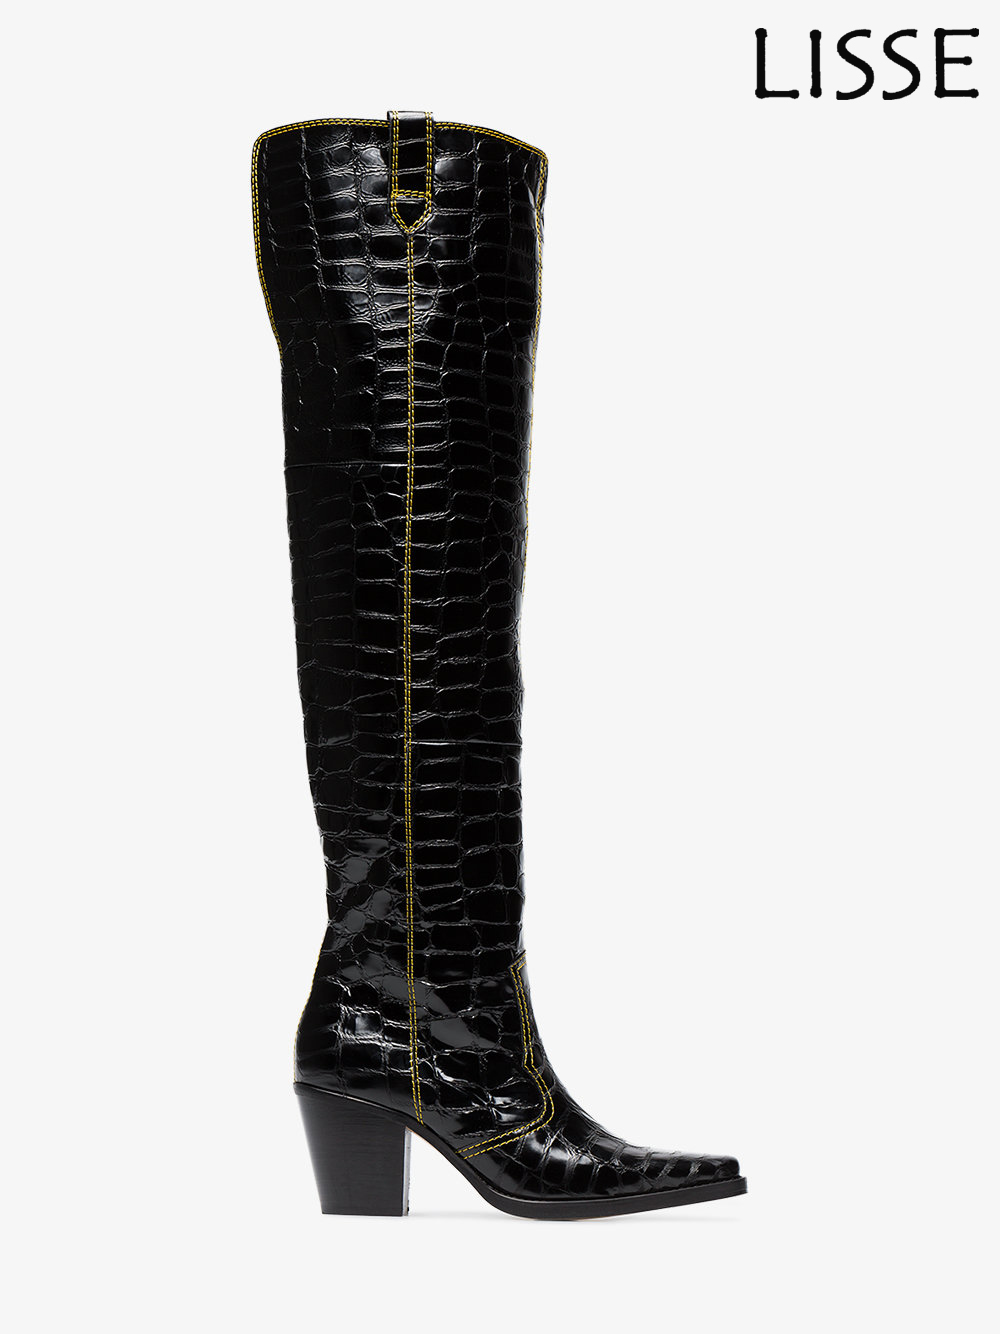 2018 Women Square Toe Block Heel Crocodile Pattern Over the Knee Boots Black Big Size 4-15.5 Support Custom Fit цена